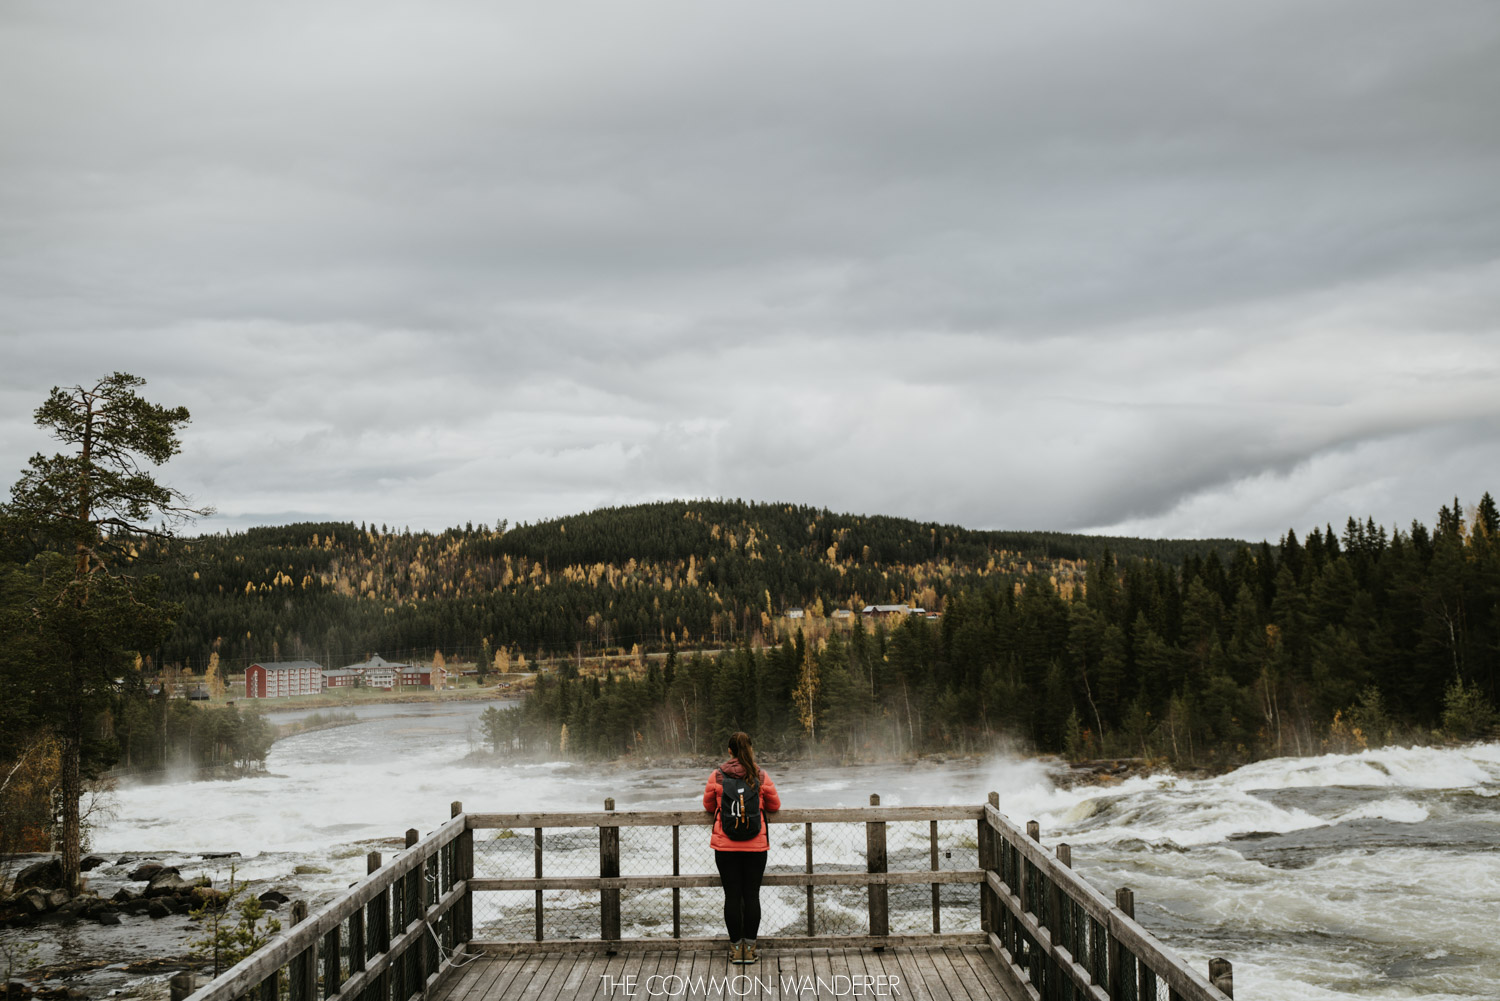 Lapland Pictures: Looking out over Storforsen Waterfall, sweden